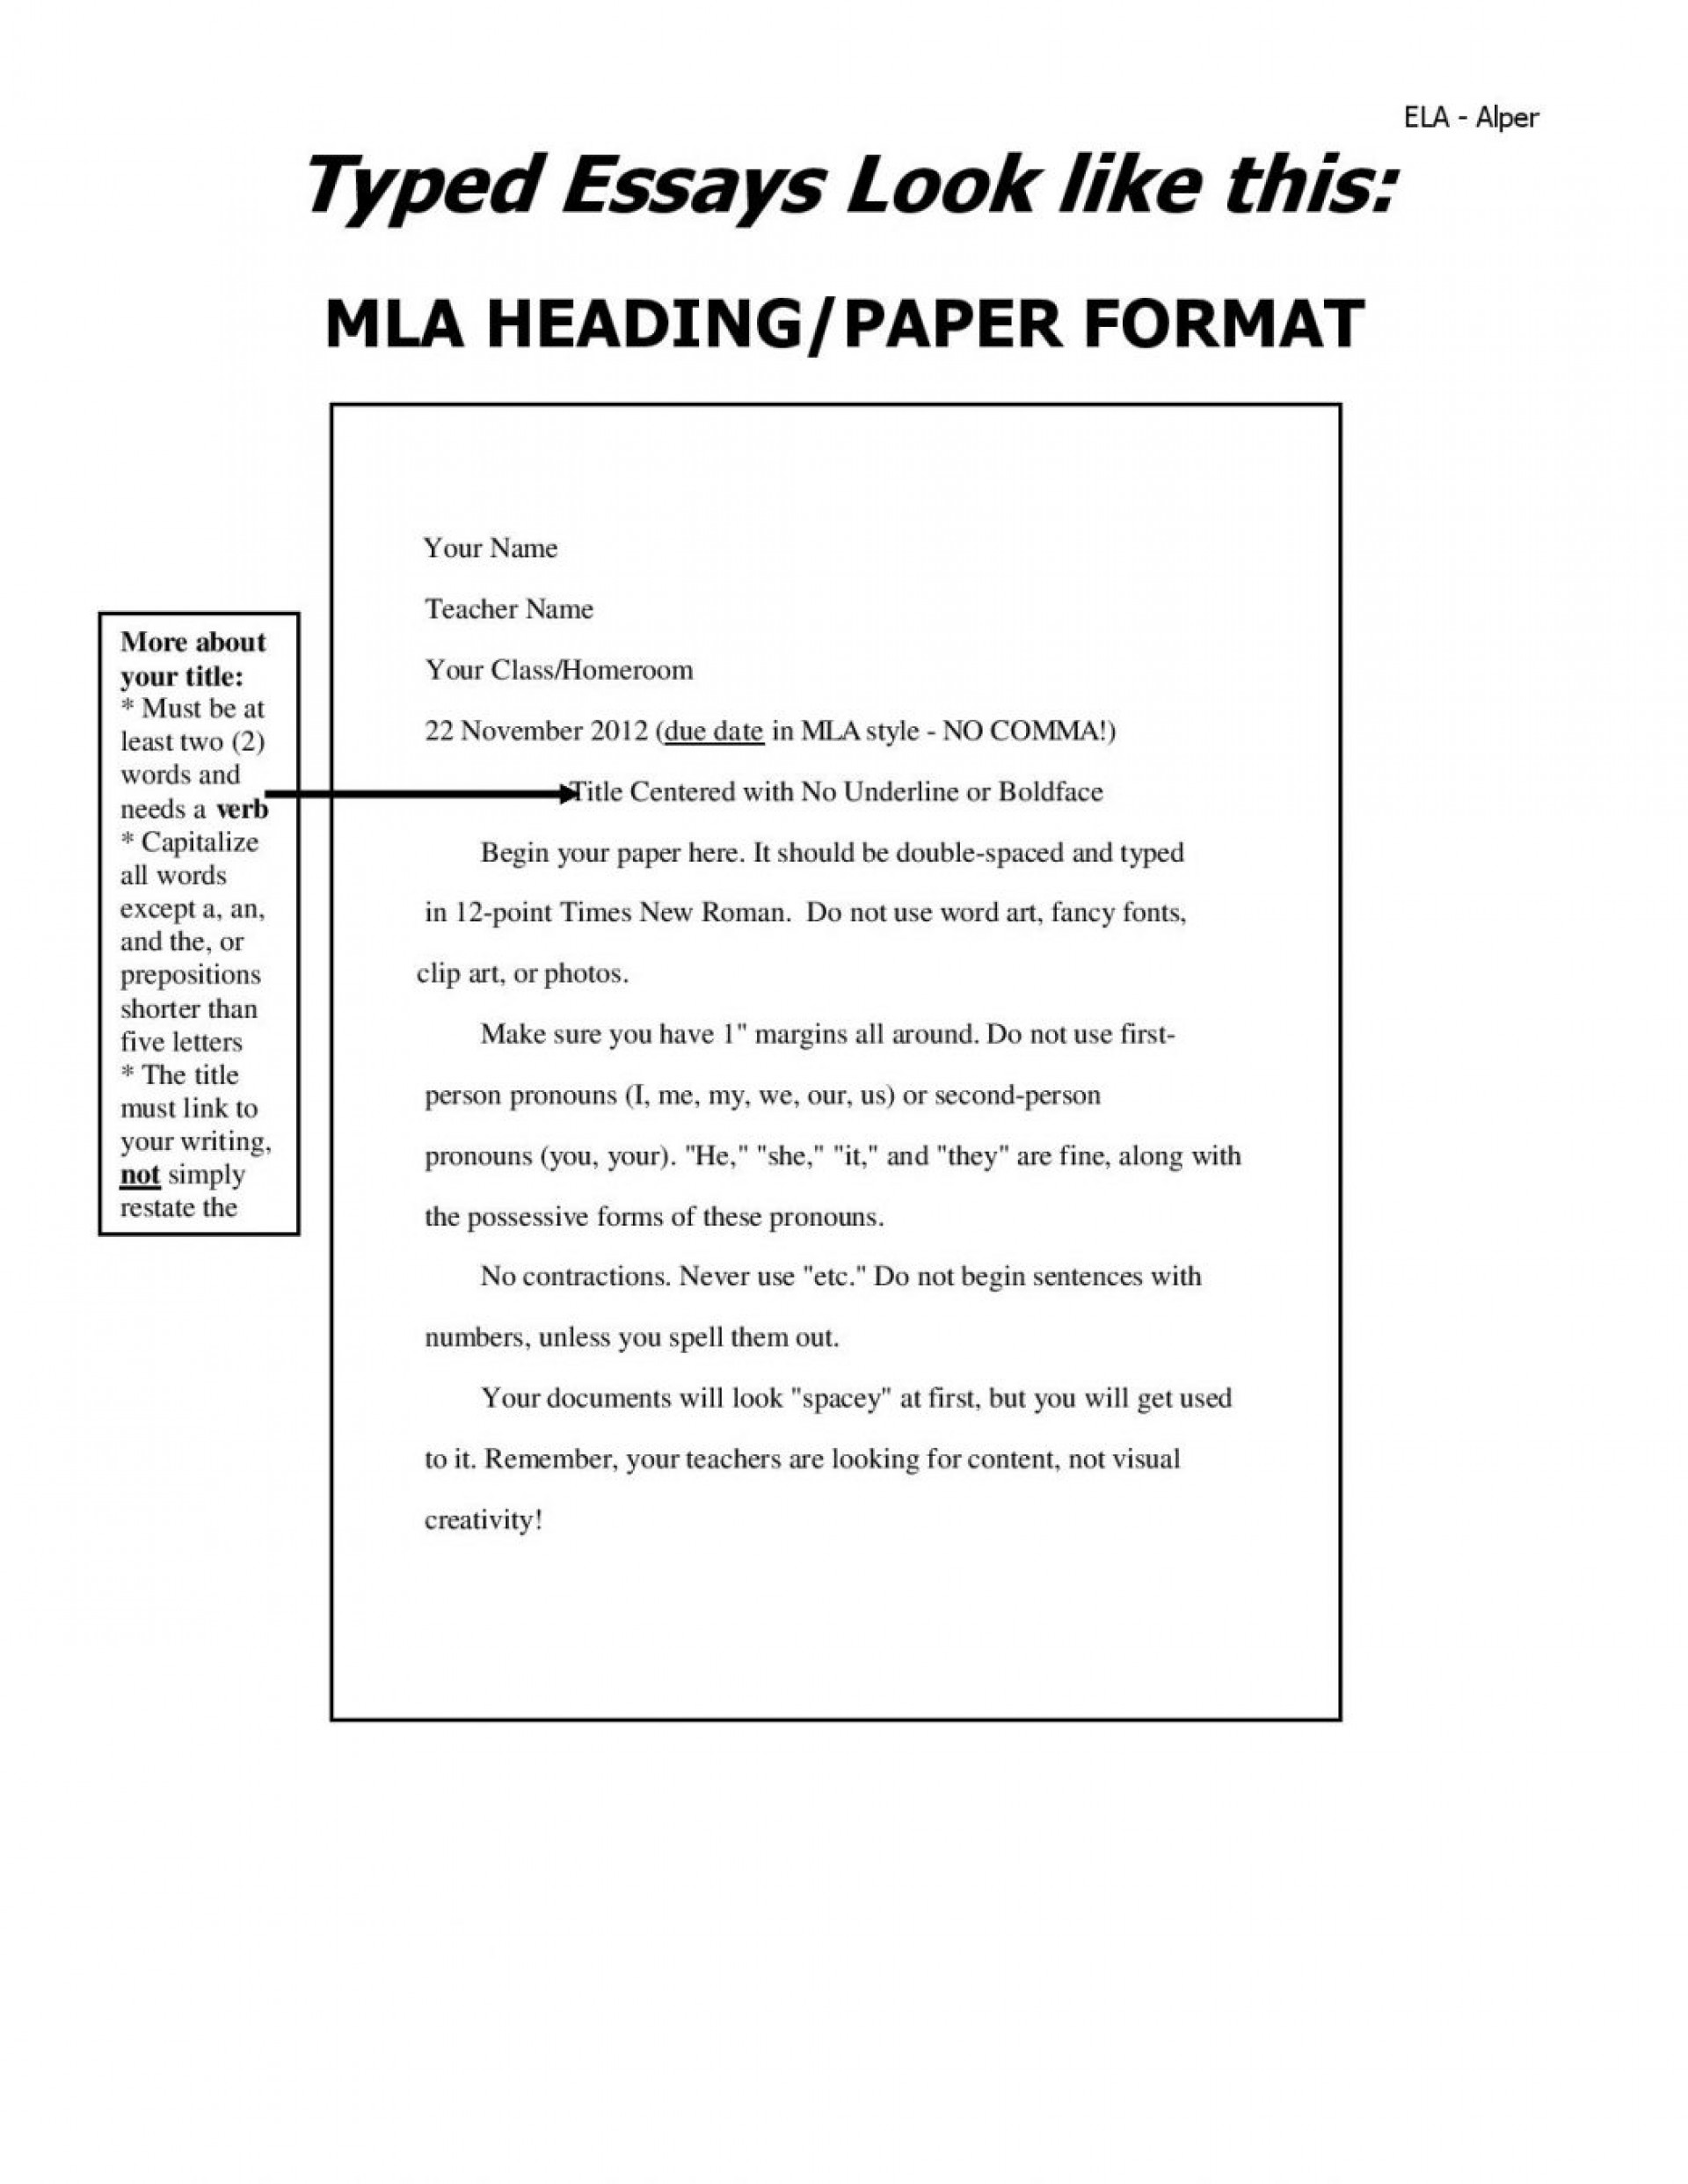 003 Enumeration Essay Essays On Walmart Persuasive Why We Shouldnt Best Way To Write An  Typed Look Like This Pag Proper For College 1048x1356 Example Dreaded Of1920